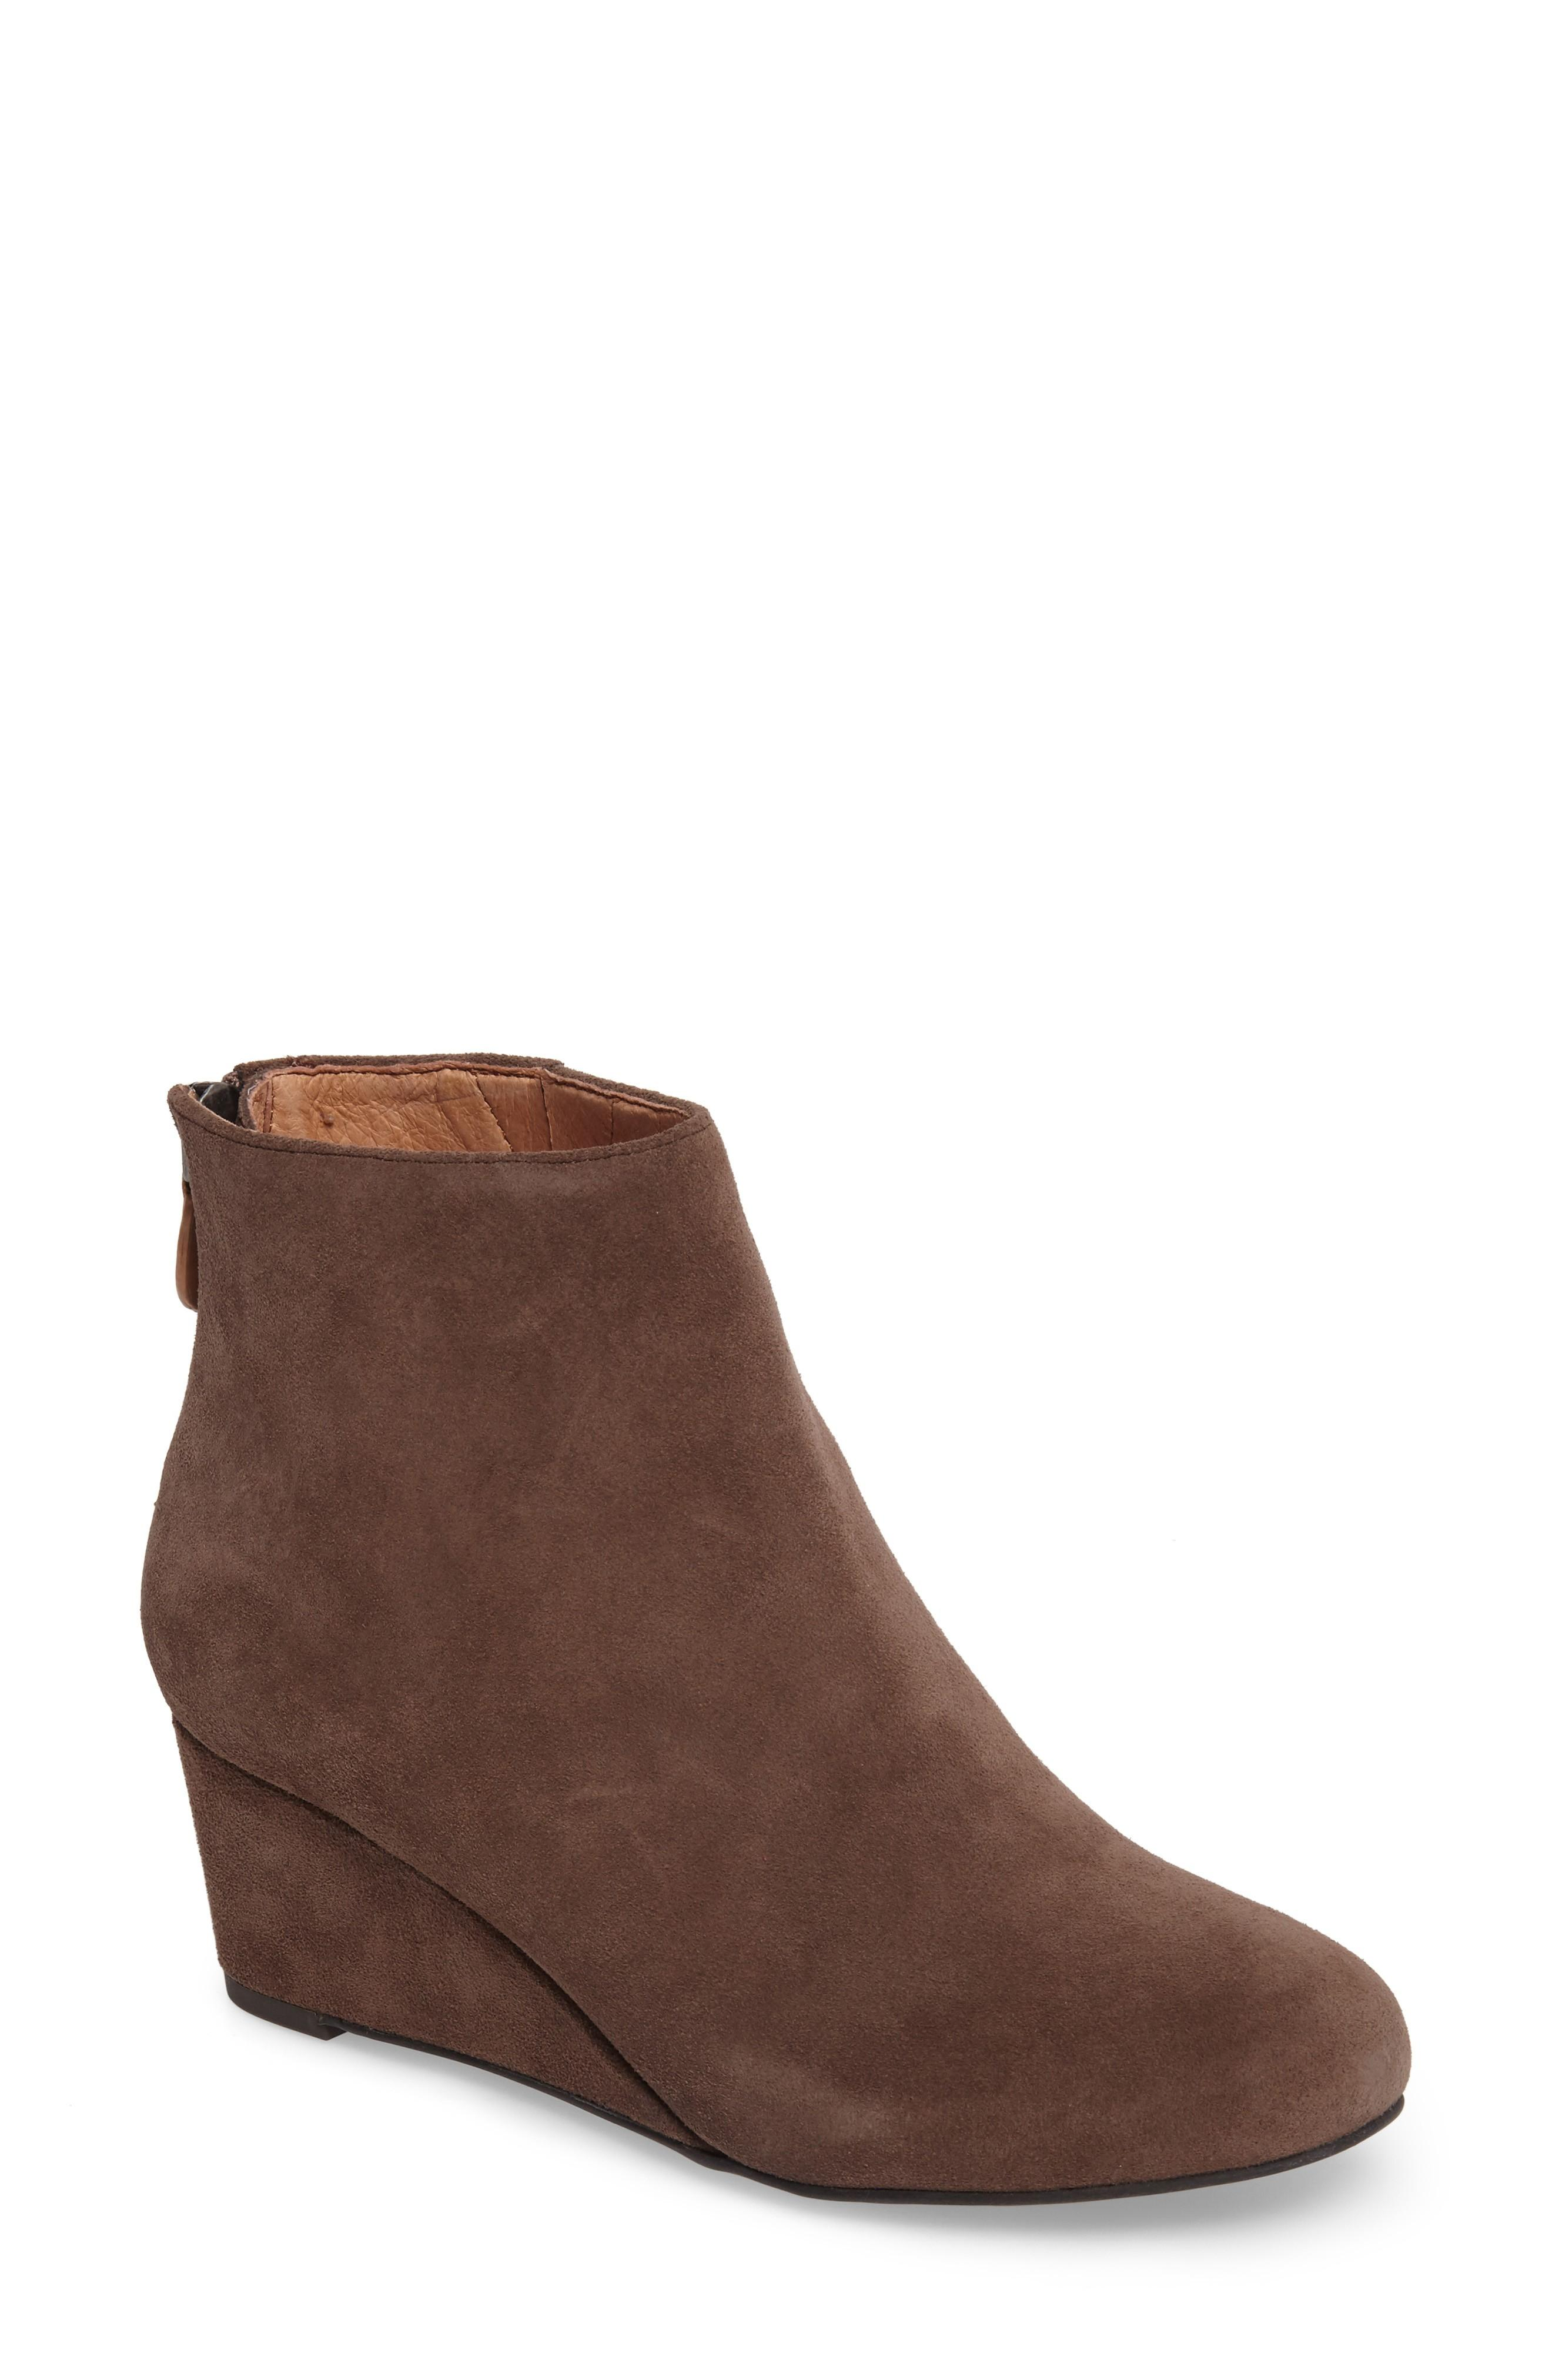 81b28aa8229 Style Name  Gentle Souls By Kenneth Cole Vicki Wedge Bootie (Women). Style  Number  5402171.